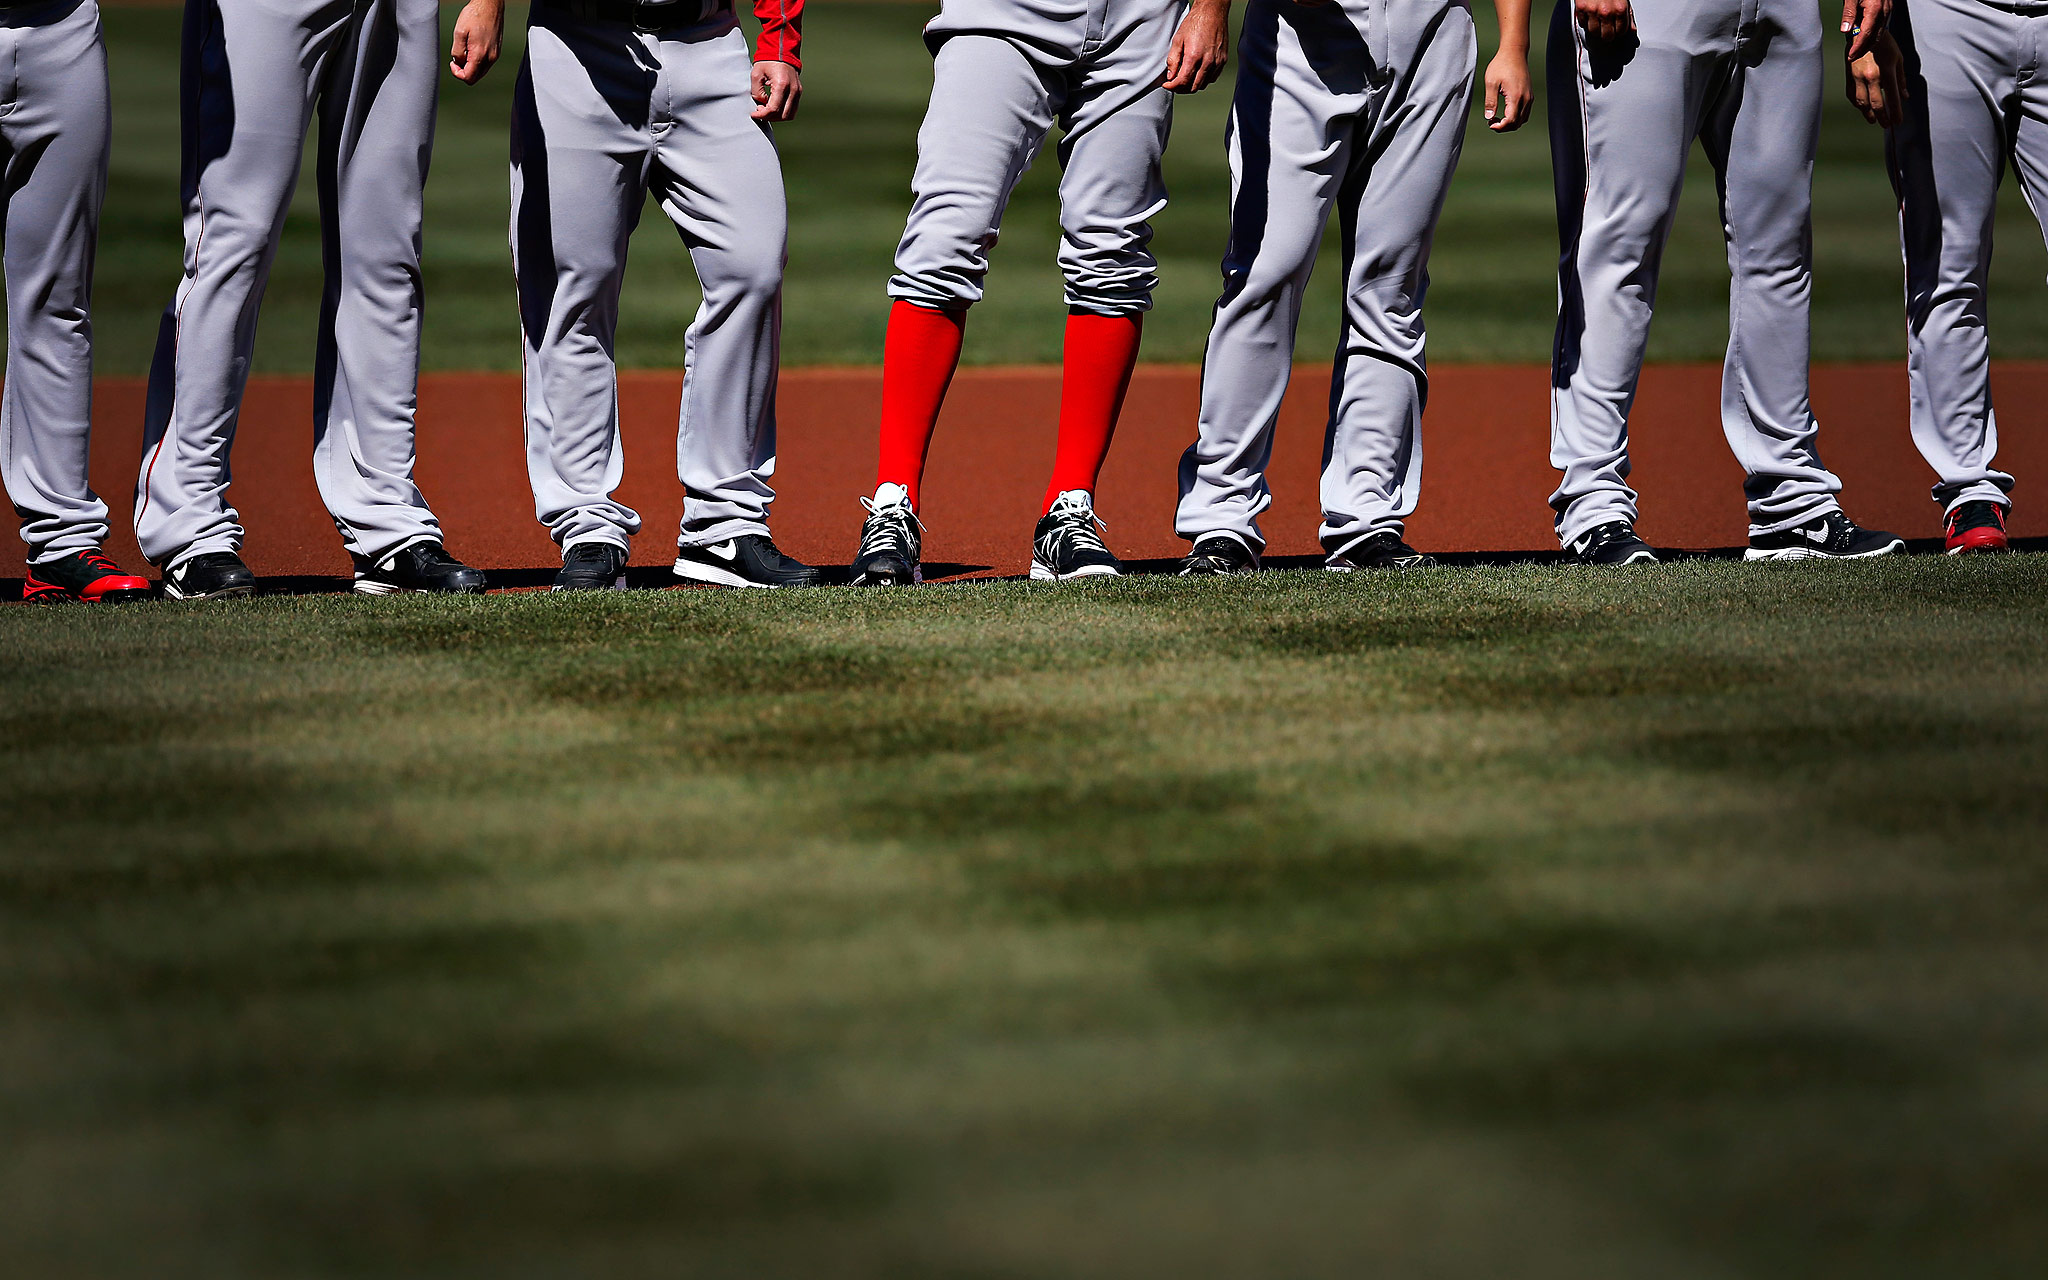 Red Sox Opening Day Baseball 2014